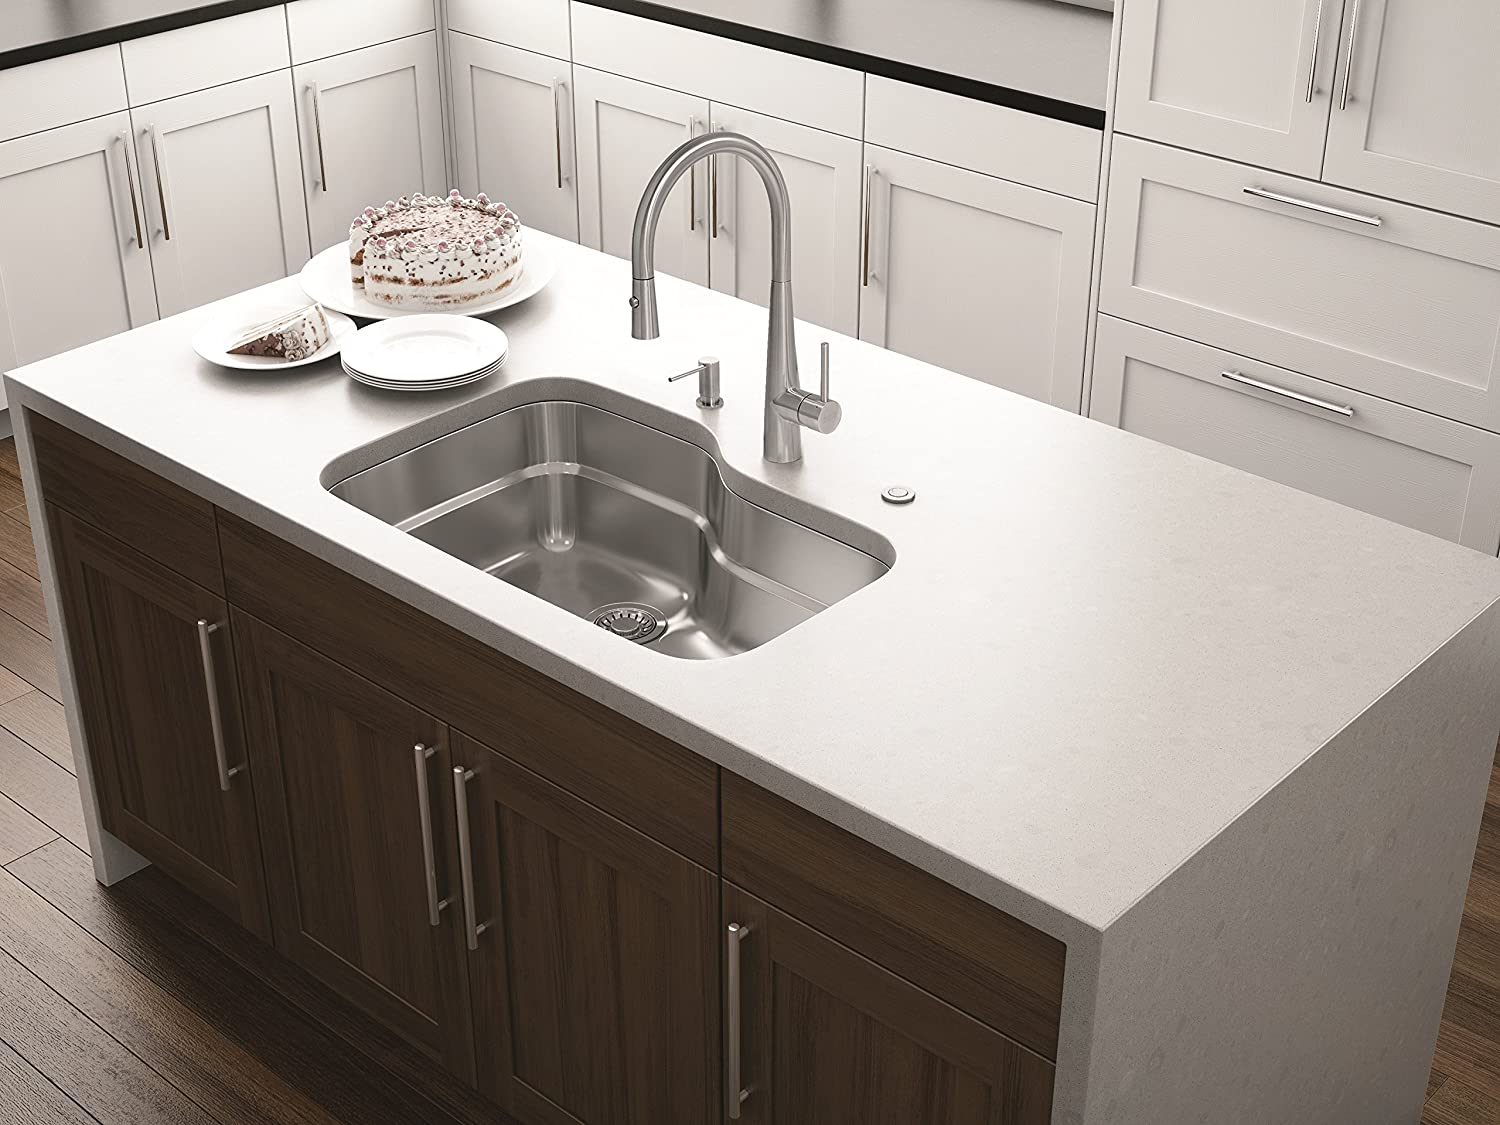 franke granite kitchen sinks franke sinks reviews 2018 make your kitchen more 3522